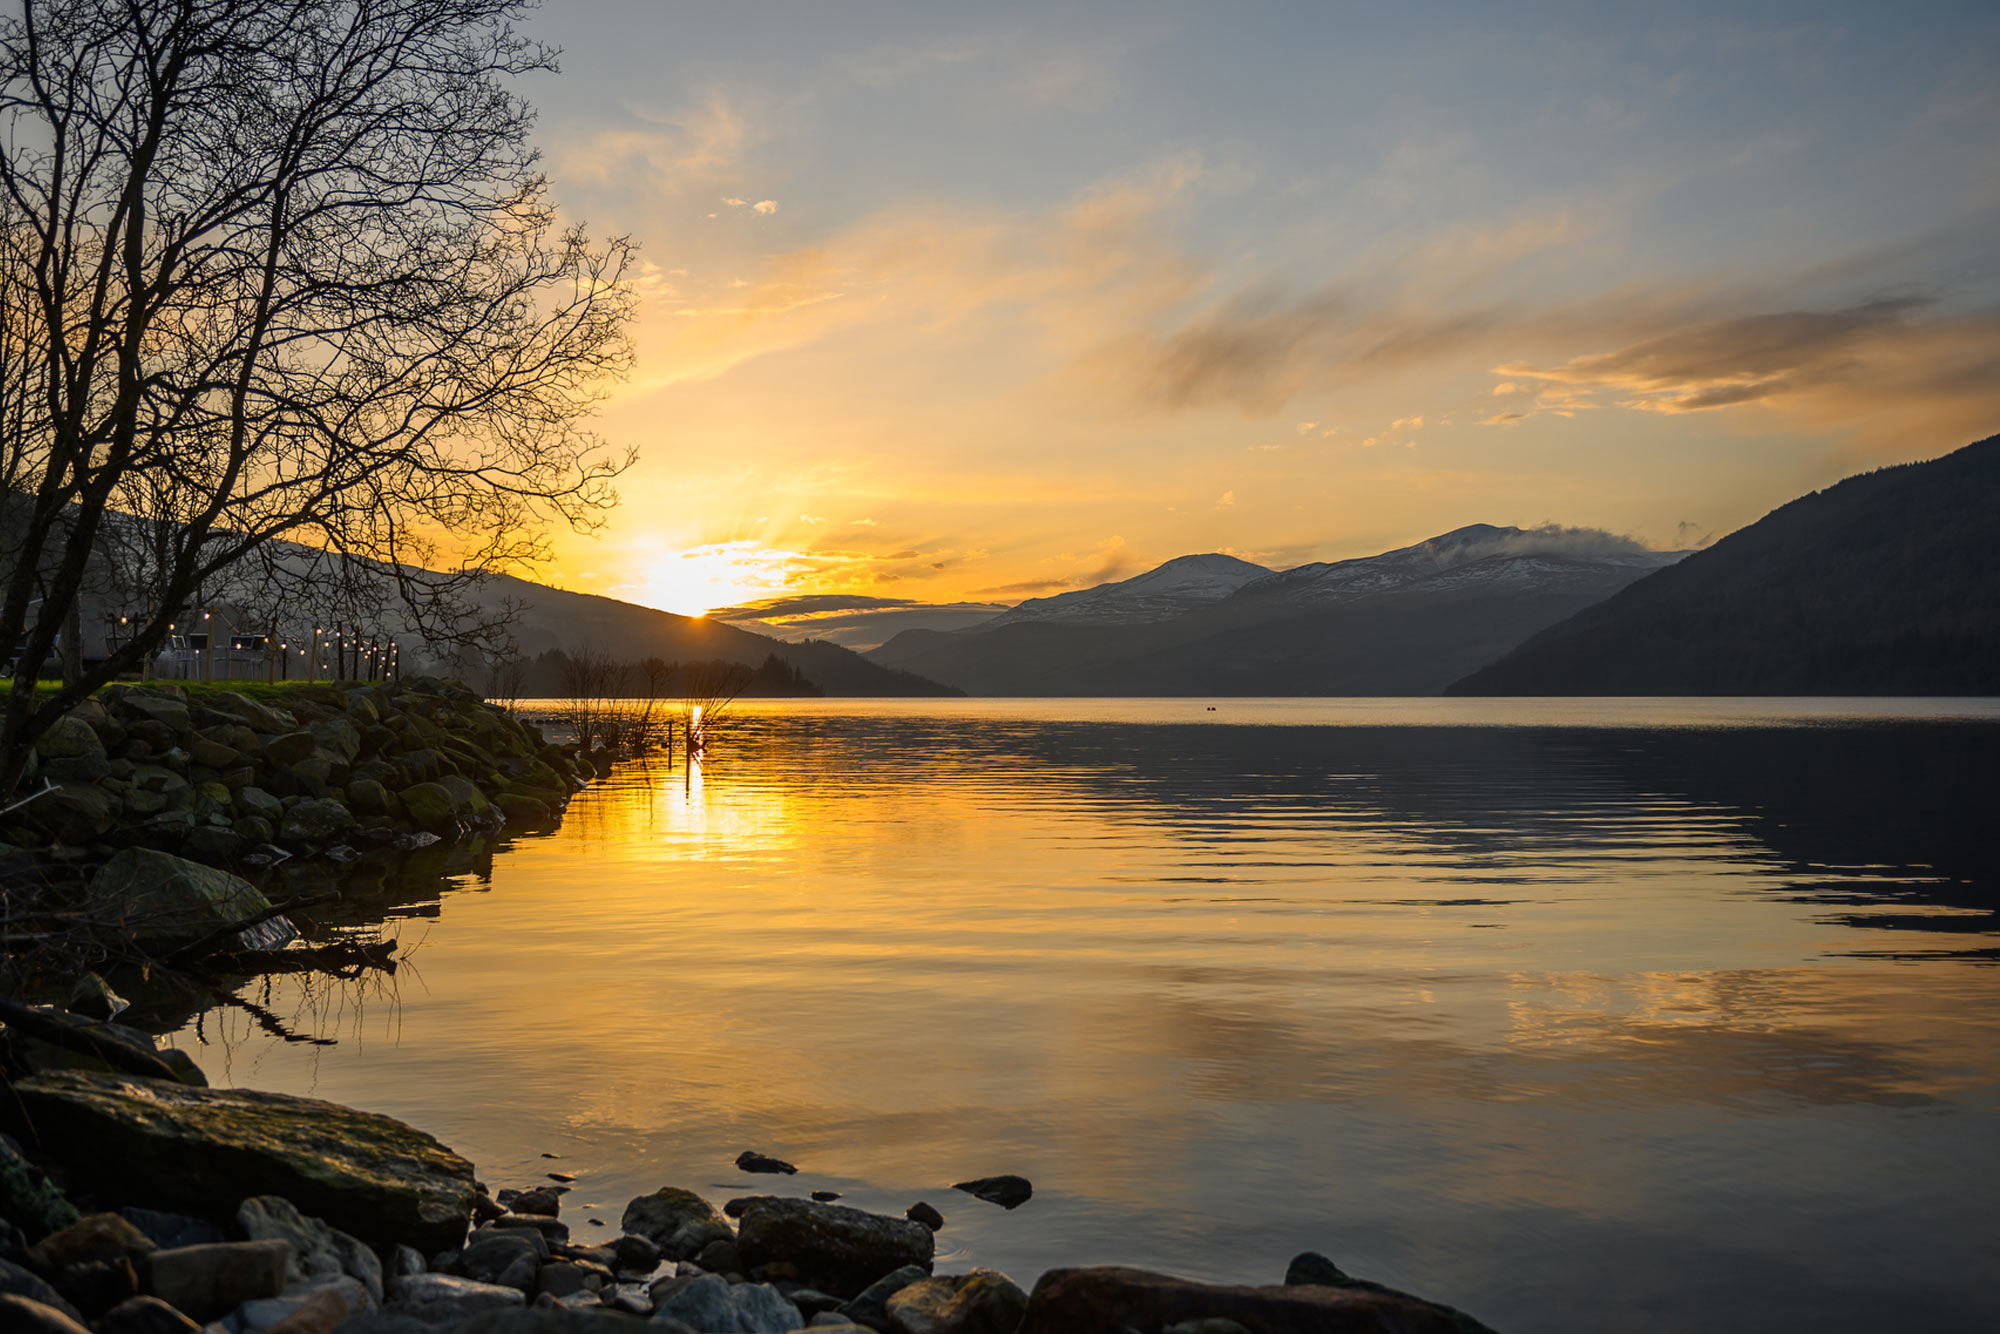 beautiful golden sunset reflected in loch tay rippling water surrounded by silhouetted hills